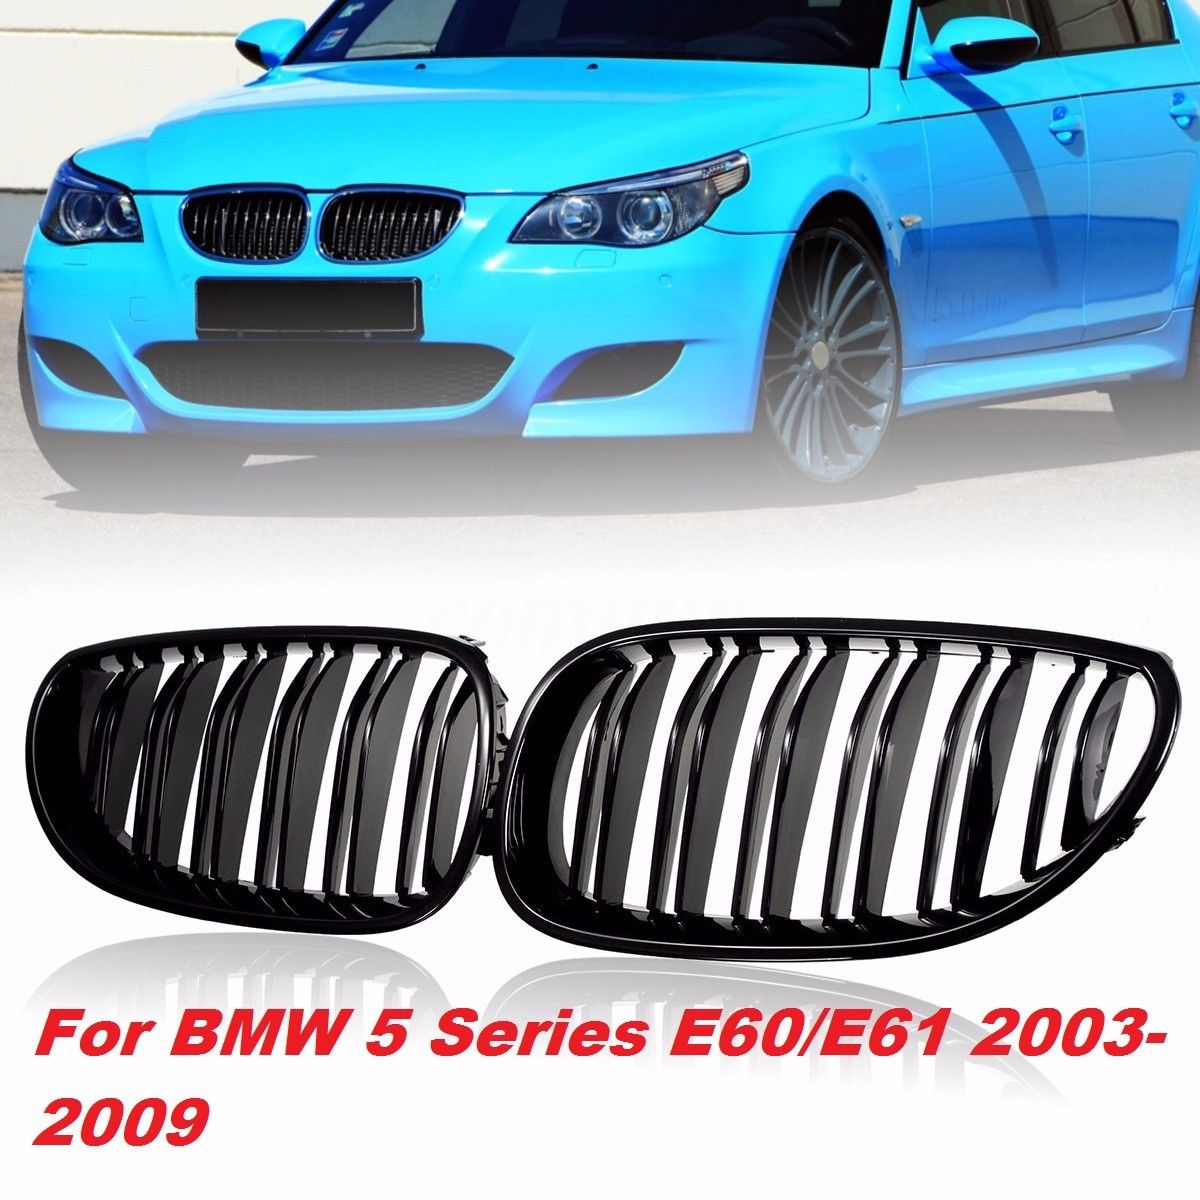 Front Kidney Grill ABS Plastic For <font><b>BMW</b></font> Double Line Grille For <font><b>BMW</b></font> E60 <font><b>E61</b></font> 5 SERIES 2003-2010 image